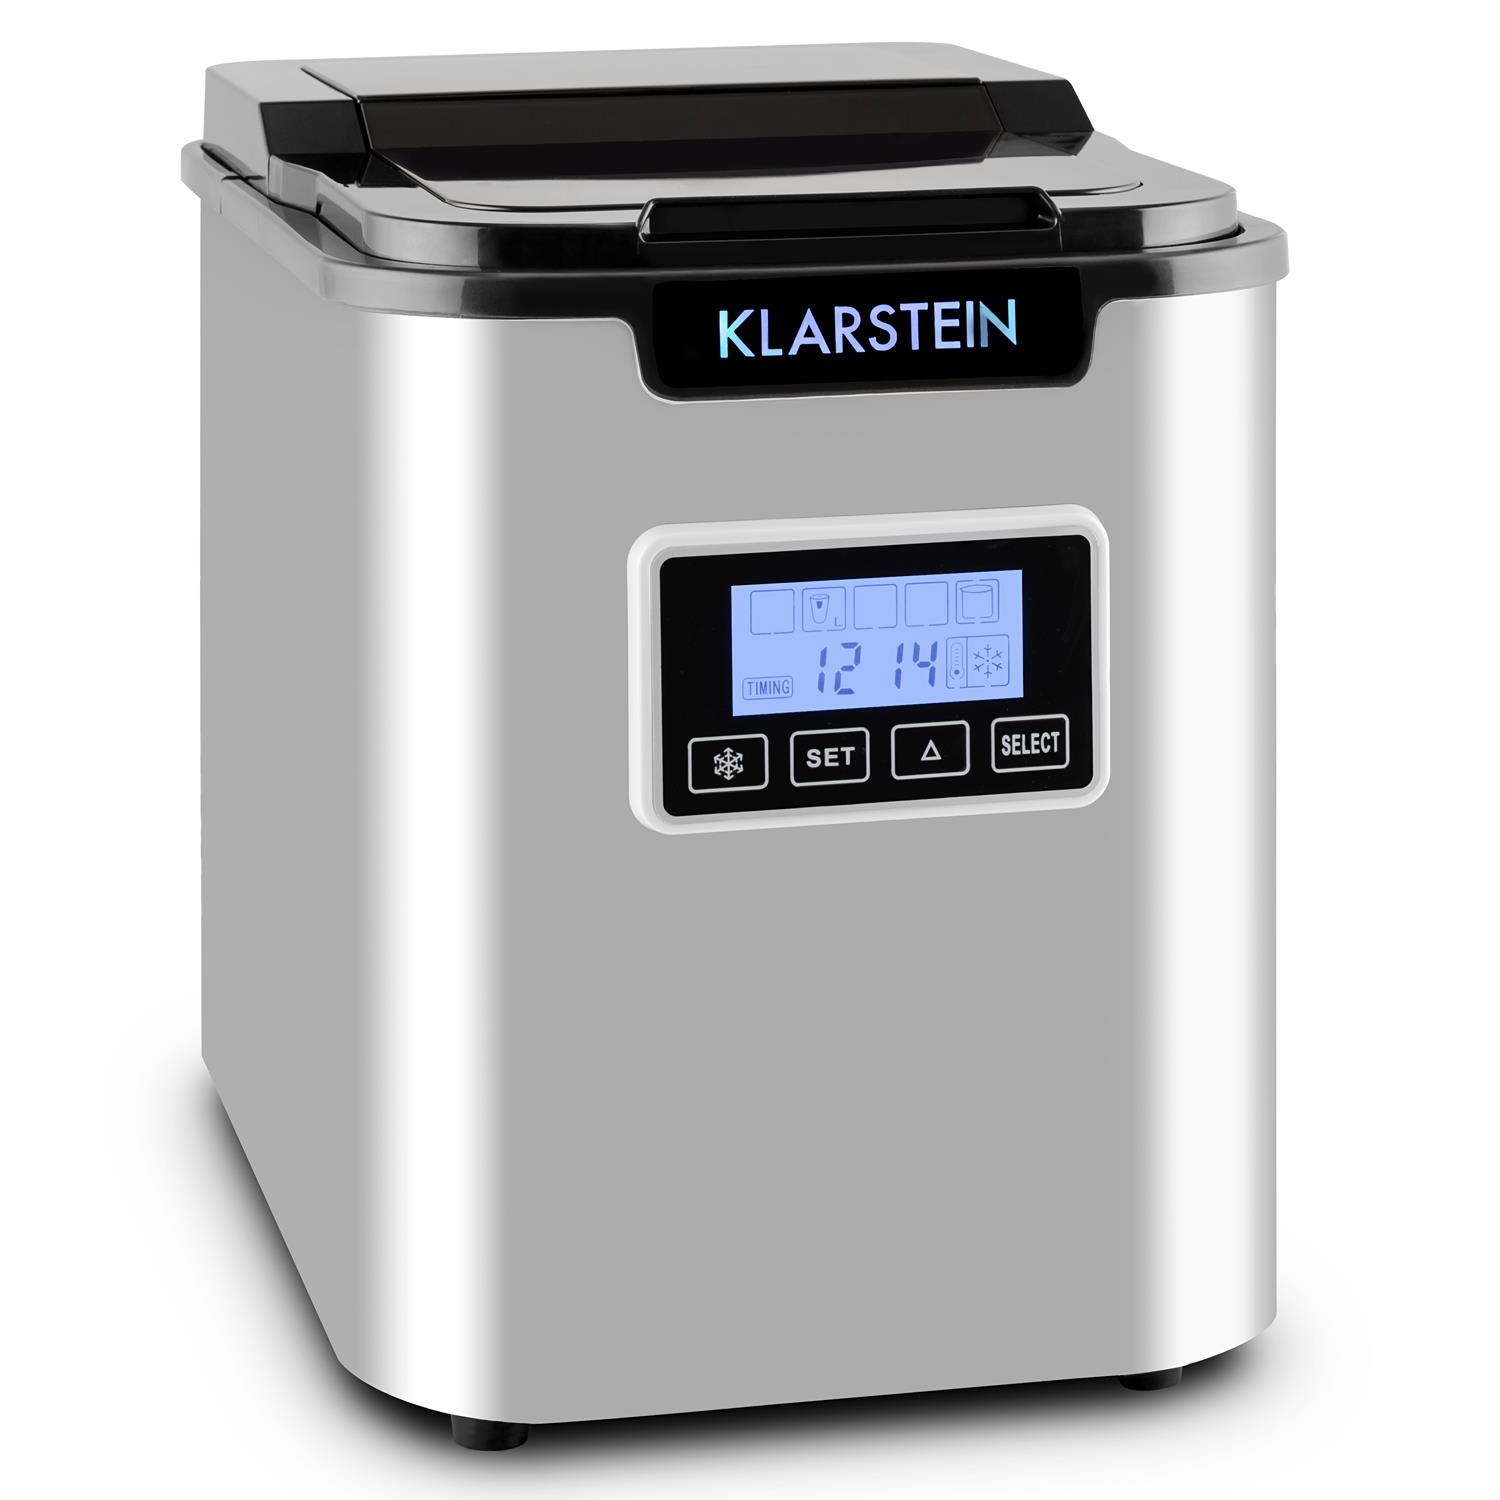 Klarstein Ice6 Icemeister Bar Restaurant Ice Cube Maker